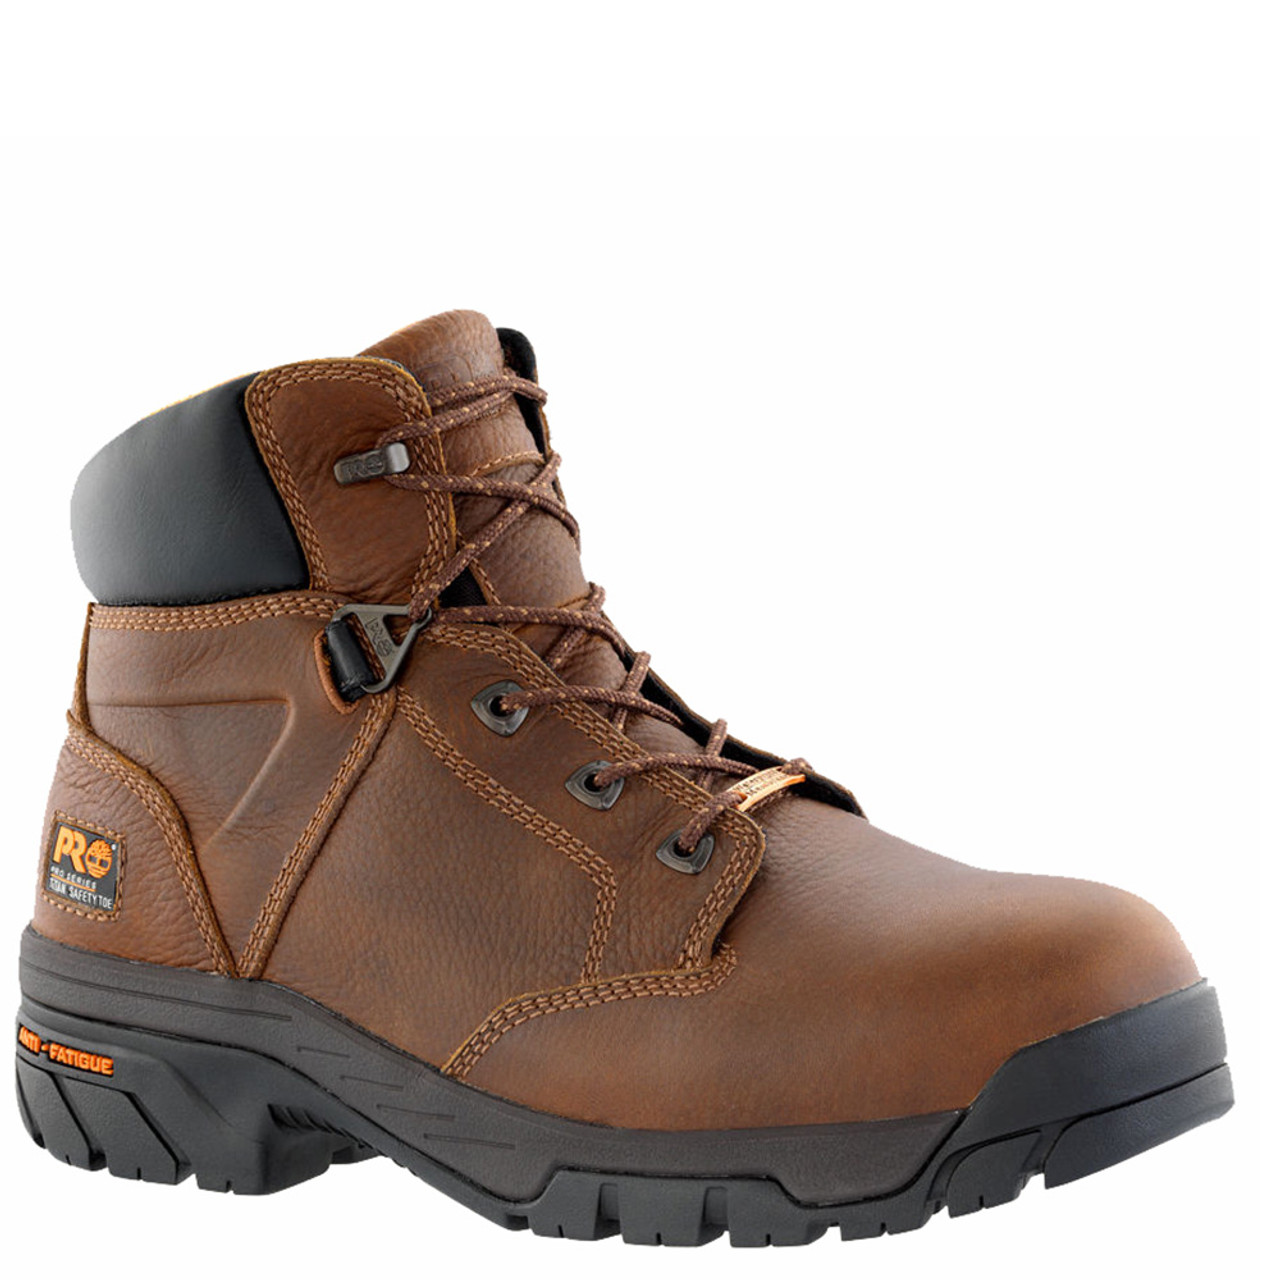 e2d50fb7653 Timberland PRO 85594 HELIX Safety Toe Non-Insulated Waterproof Work Boots -  Family Footwear Center